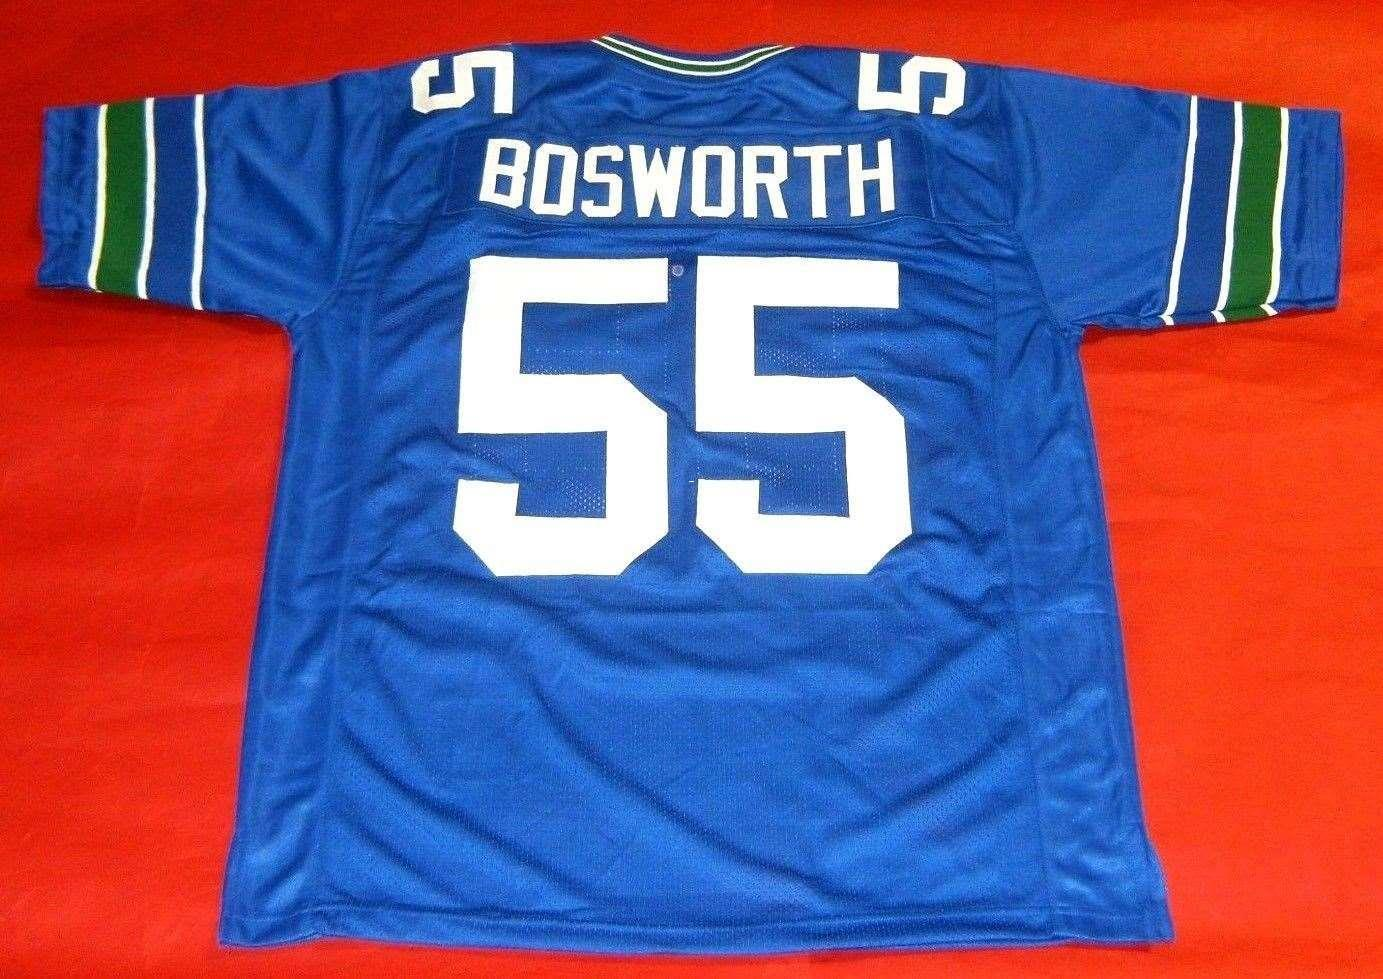 f655c53dd 2019 Cheap Retro  55 BRIAN BOSWORTH Retro JERSEY THE BOZ White Bule Mens  Stitching Football Jerseys Fat Man Big And Tall 4XL 5XL 6XL For Sale From  ...